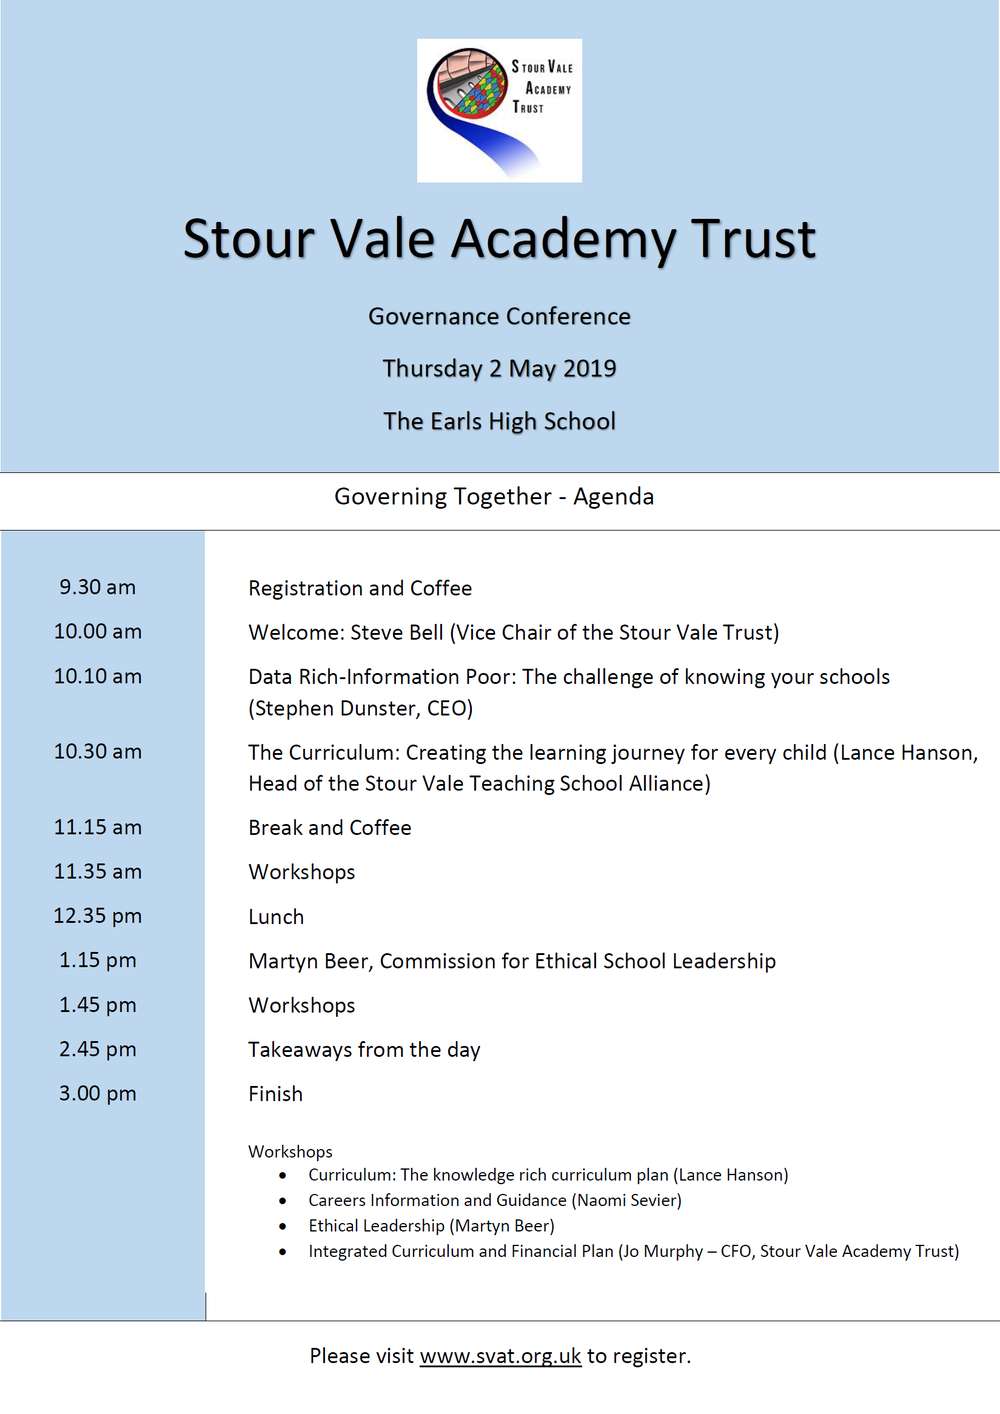 Stour Vale Governance Conference_2.5.19.png